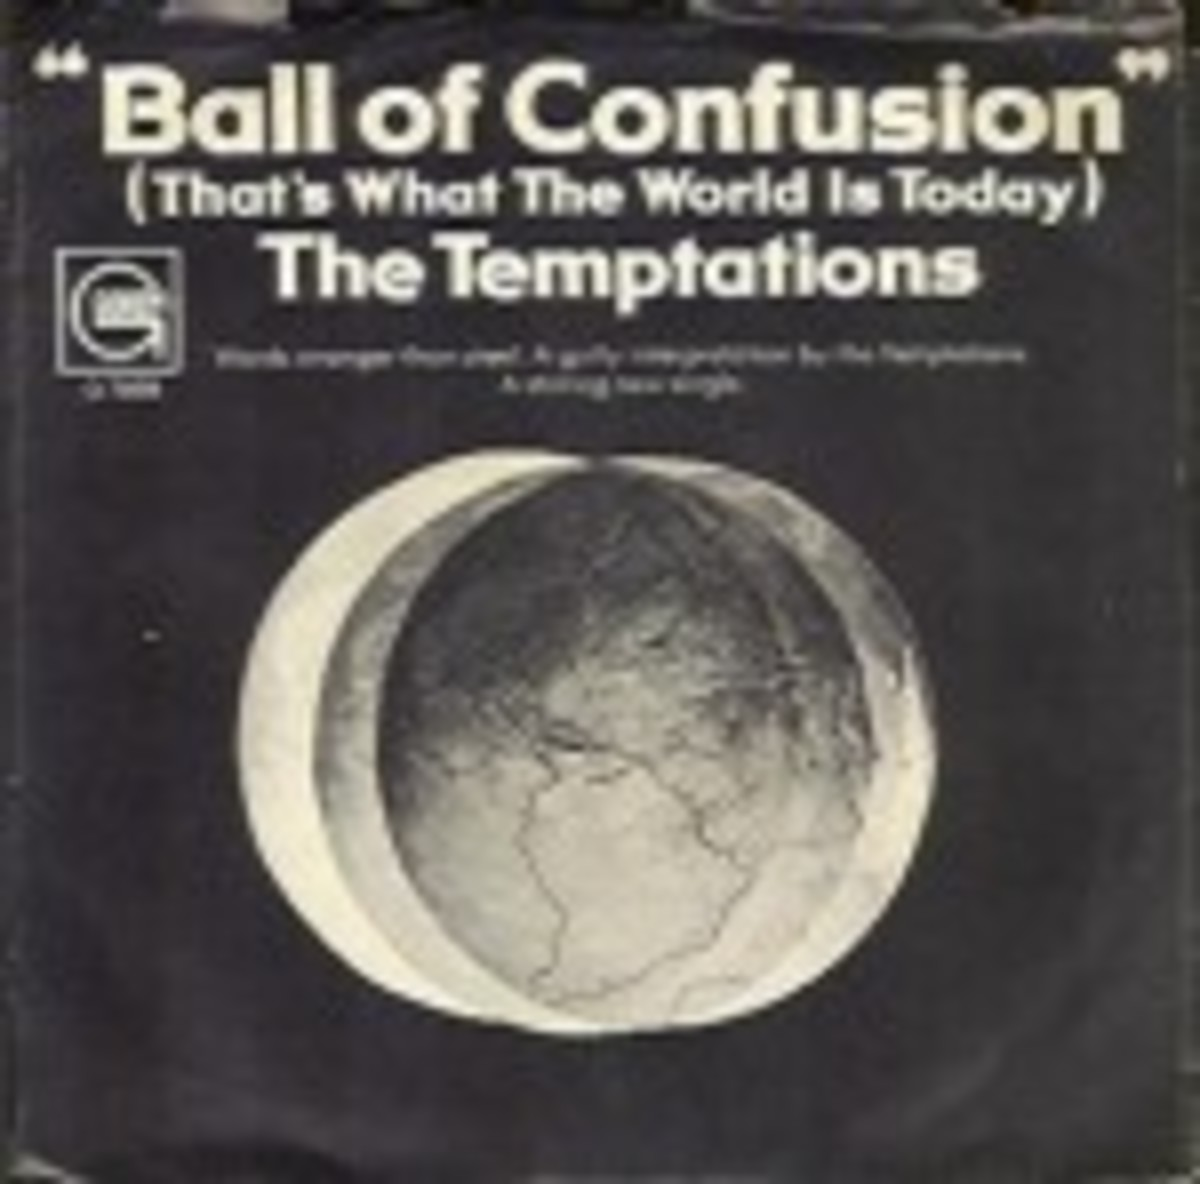 The Temptations Ball of Confusion picture sleeve